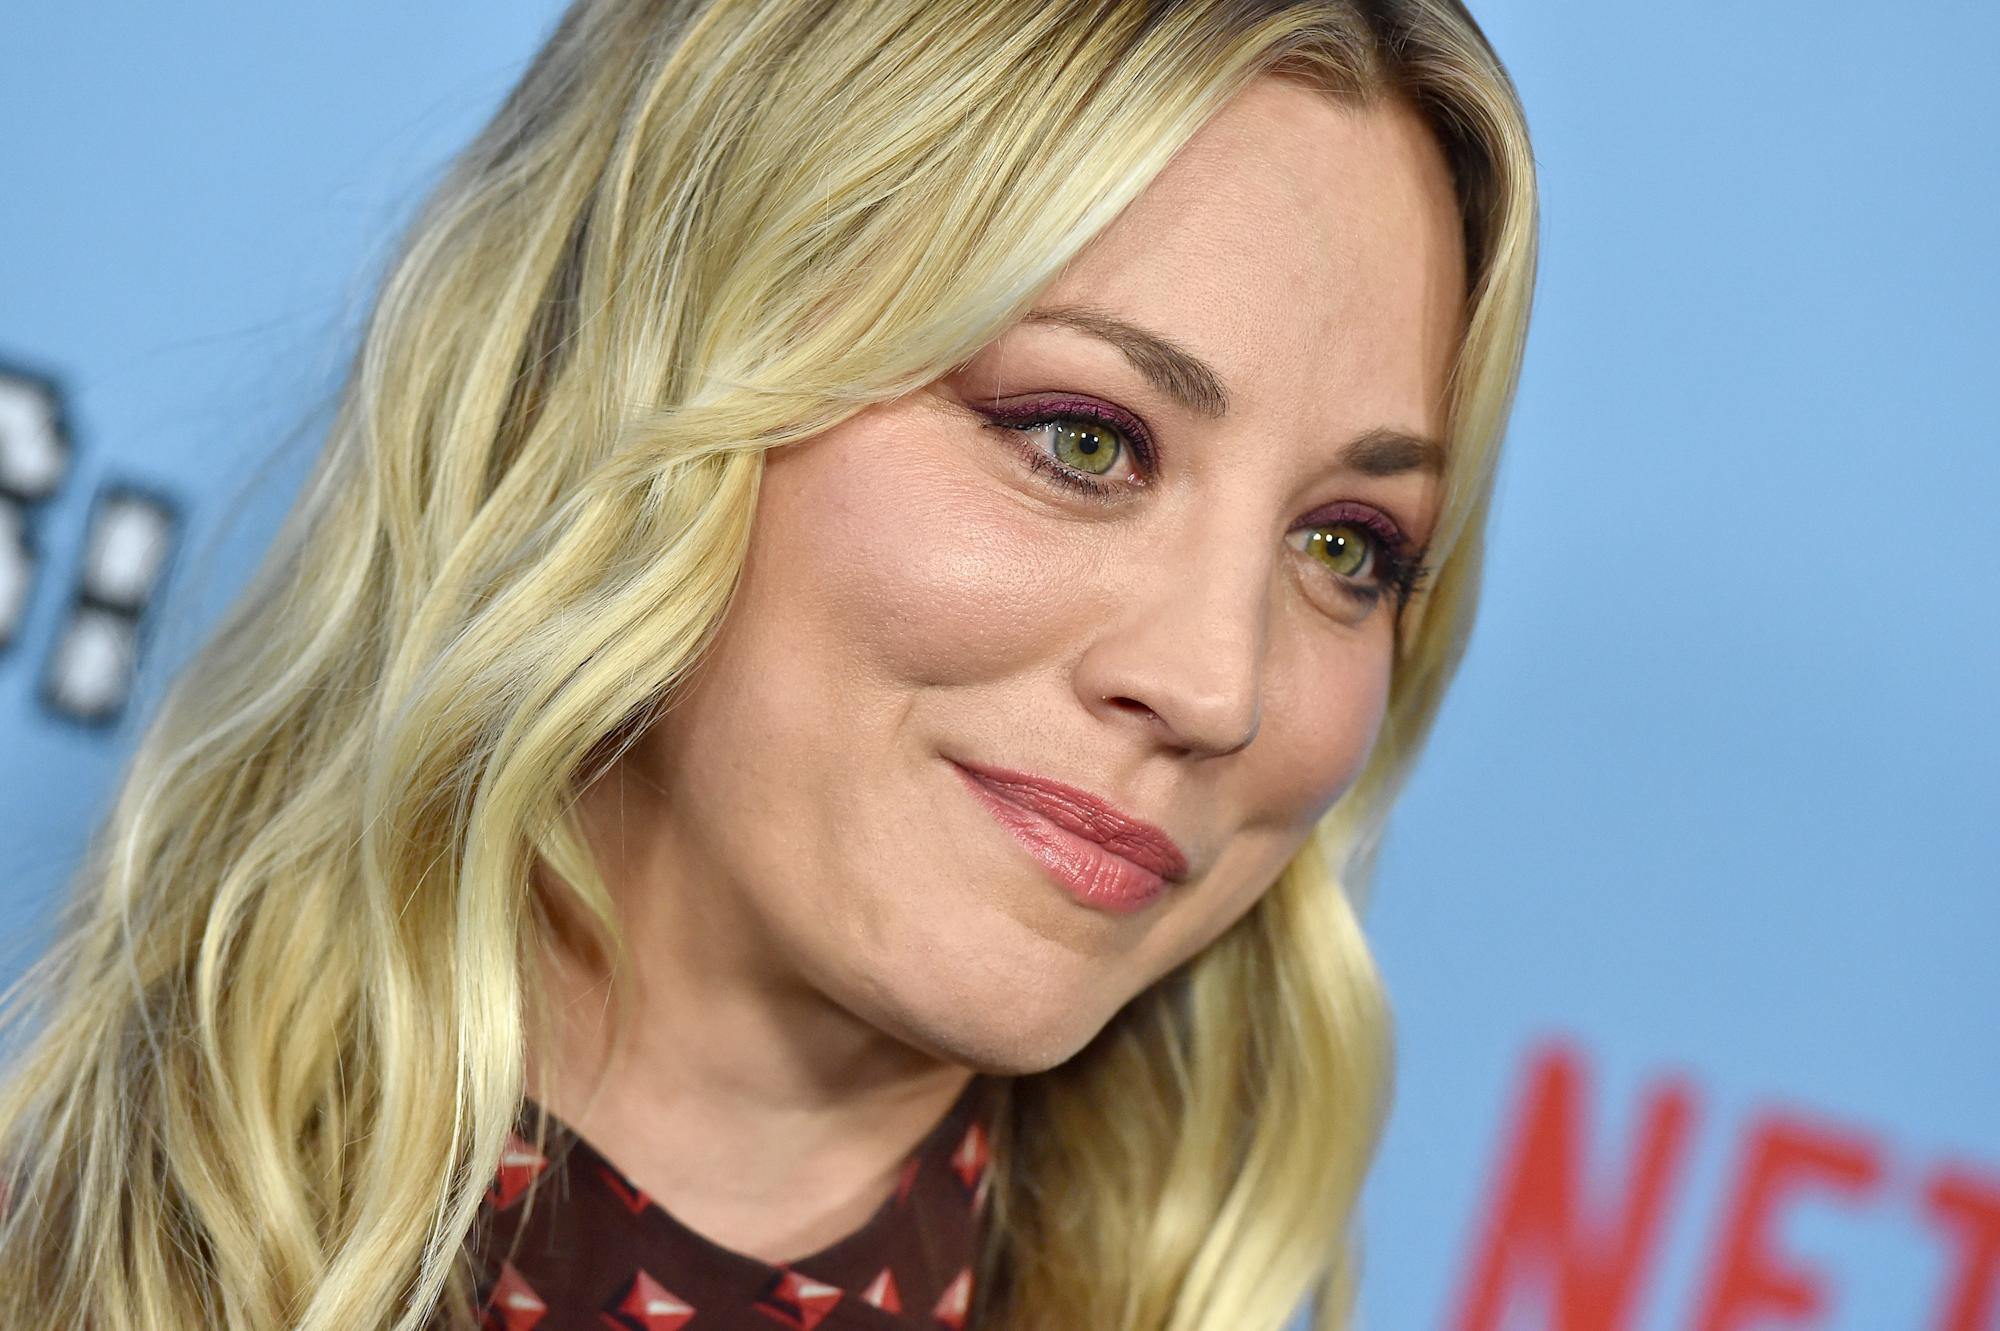 Kaley Cuoco calls out people 'discarding their animals like trash': 'Don't get a dog if you can't care for it properly' - Yahoo Entertainment